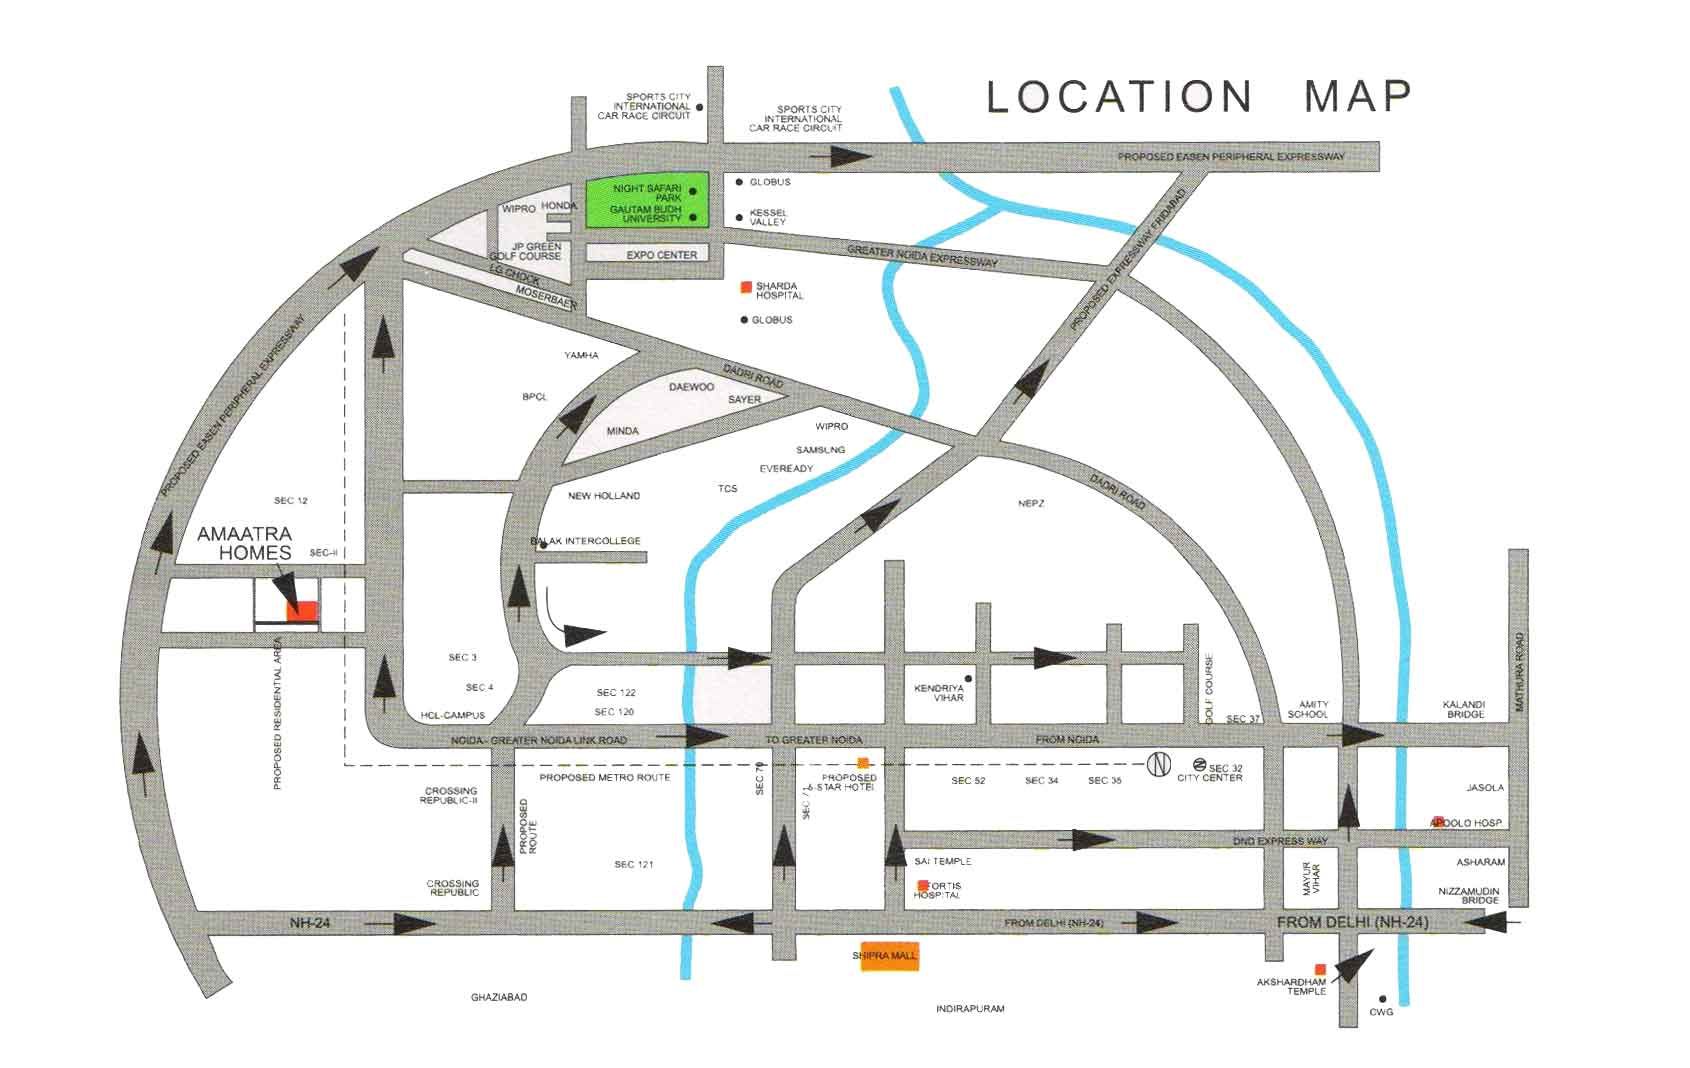 amaatra homes location map